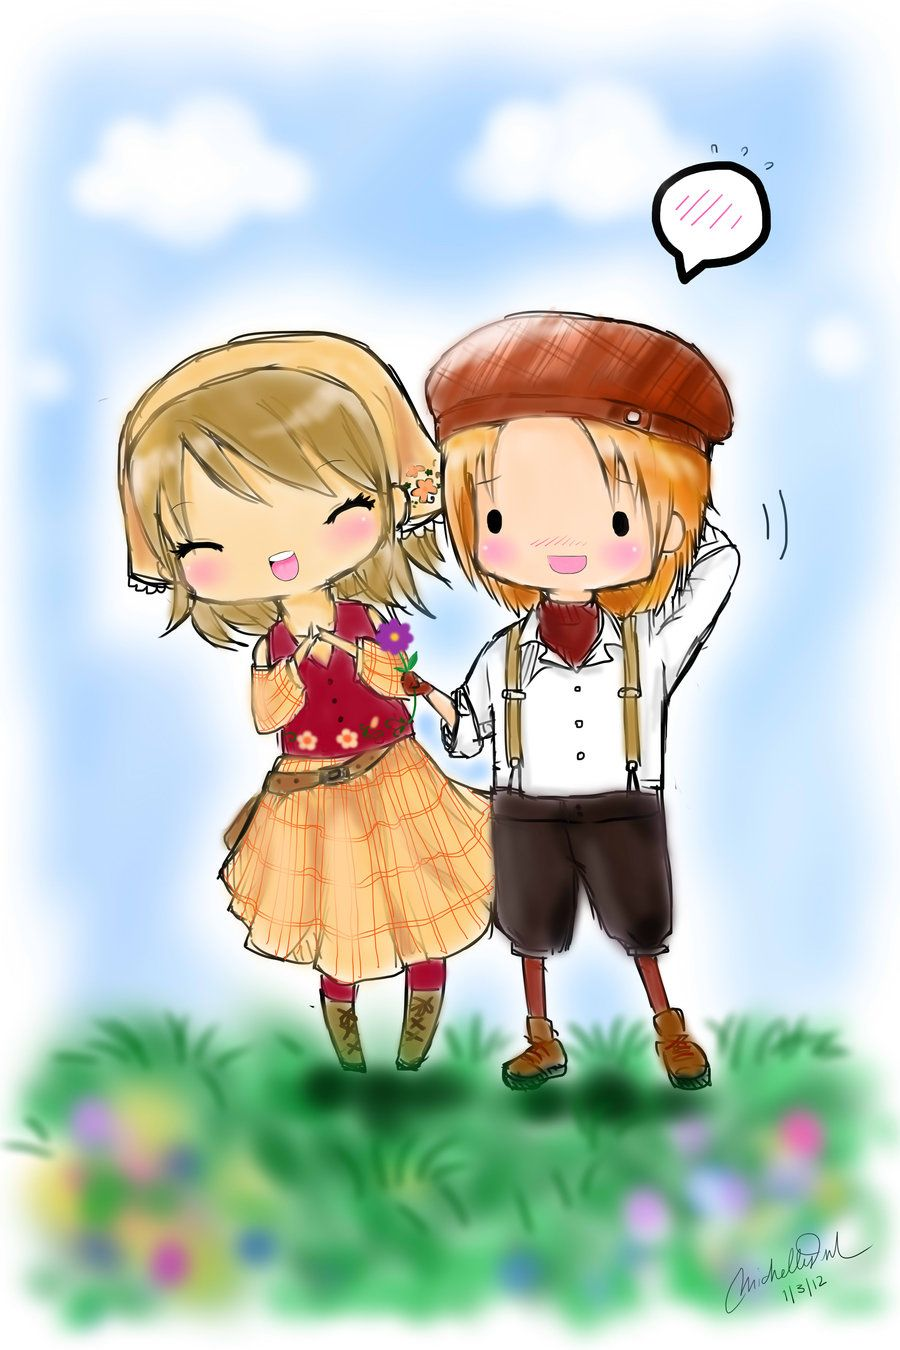 chibi Lillian and Ash from HMTOTT Harvest moon game